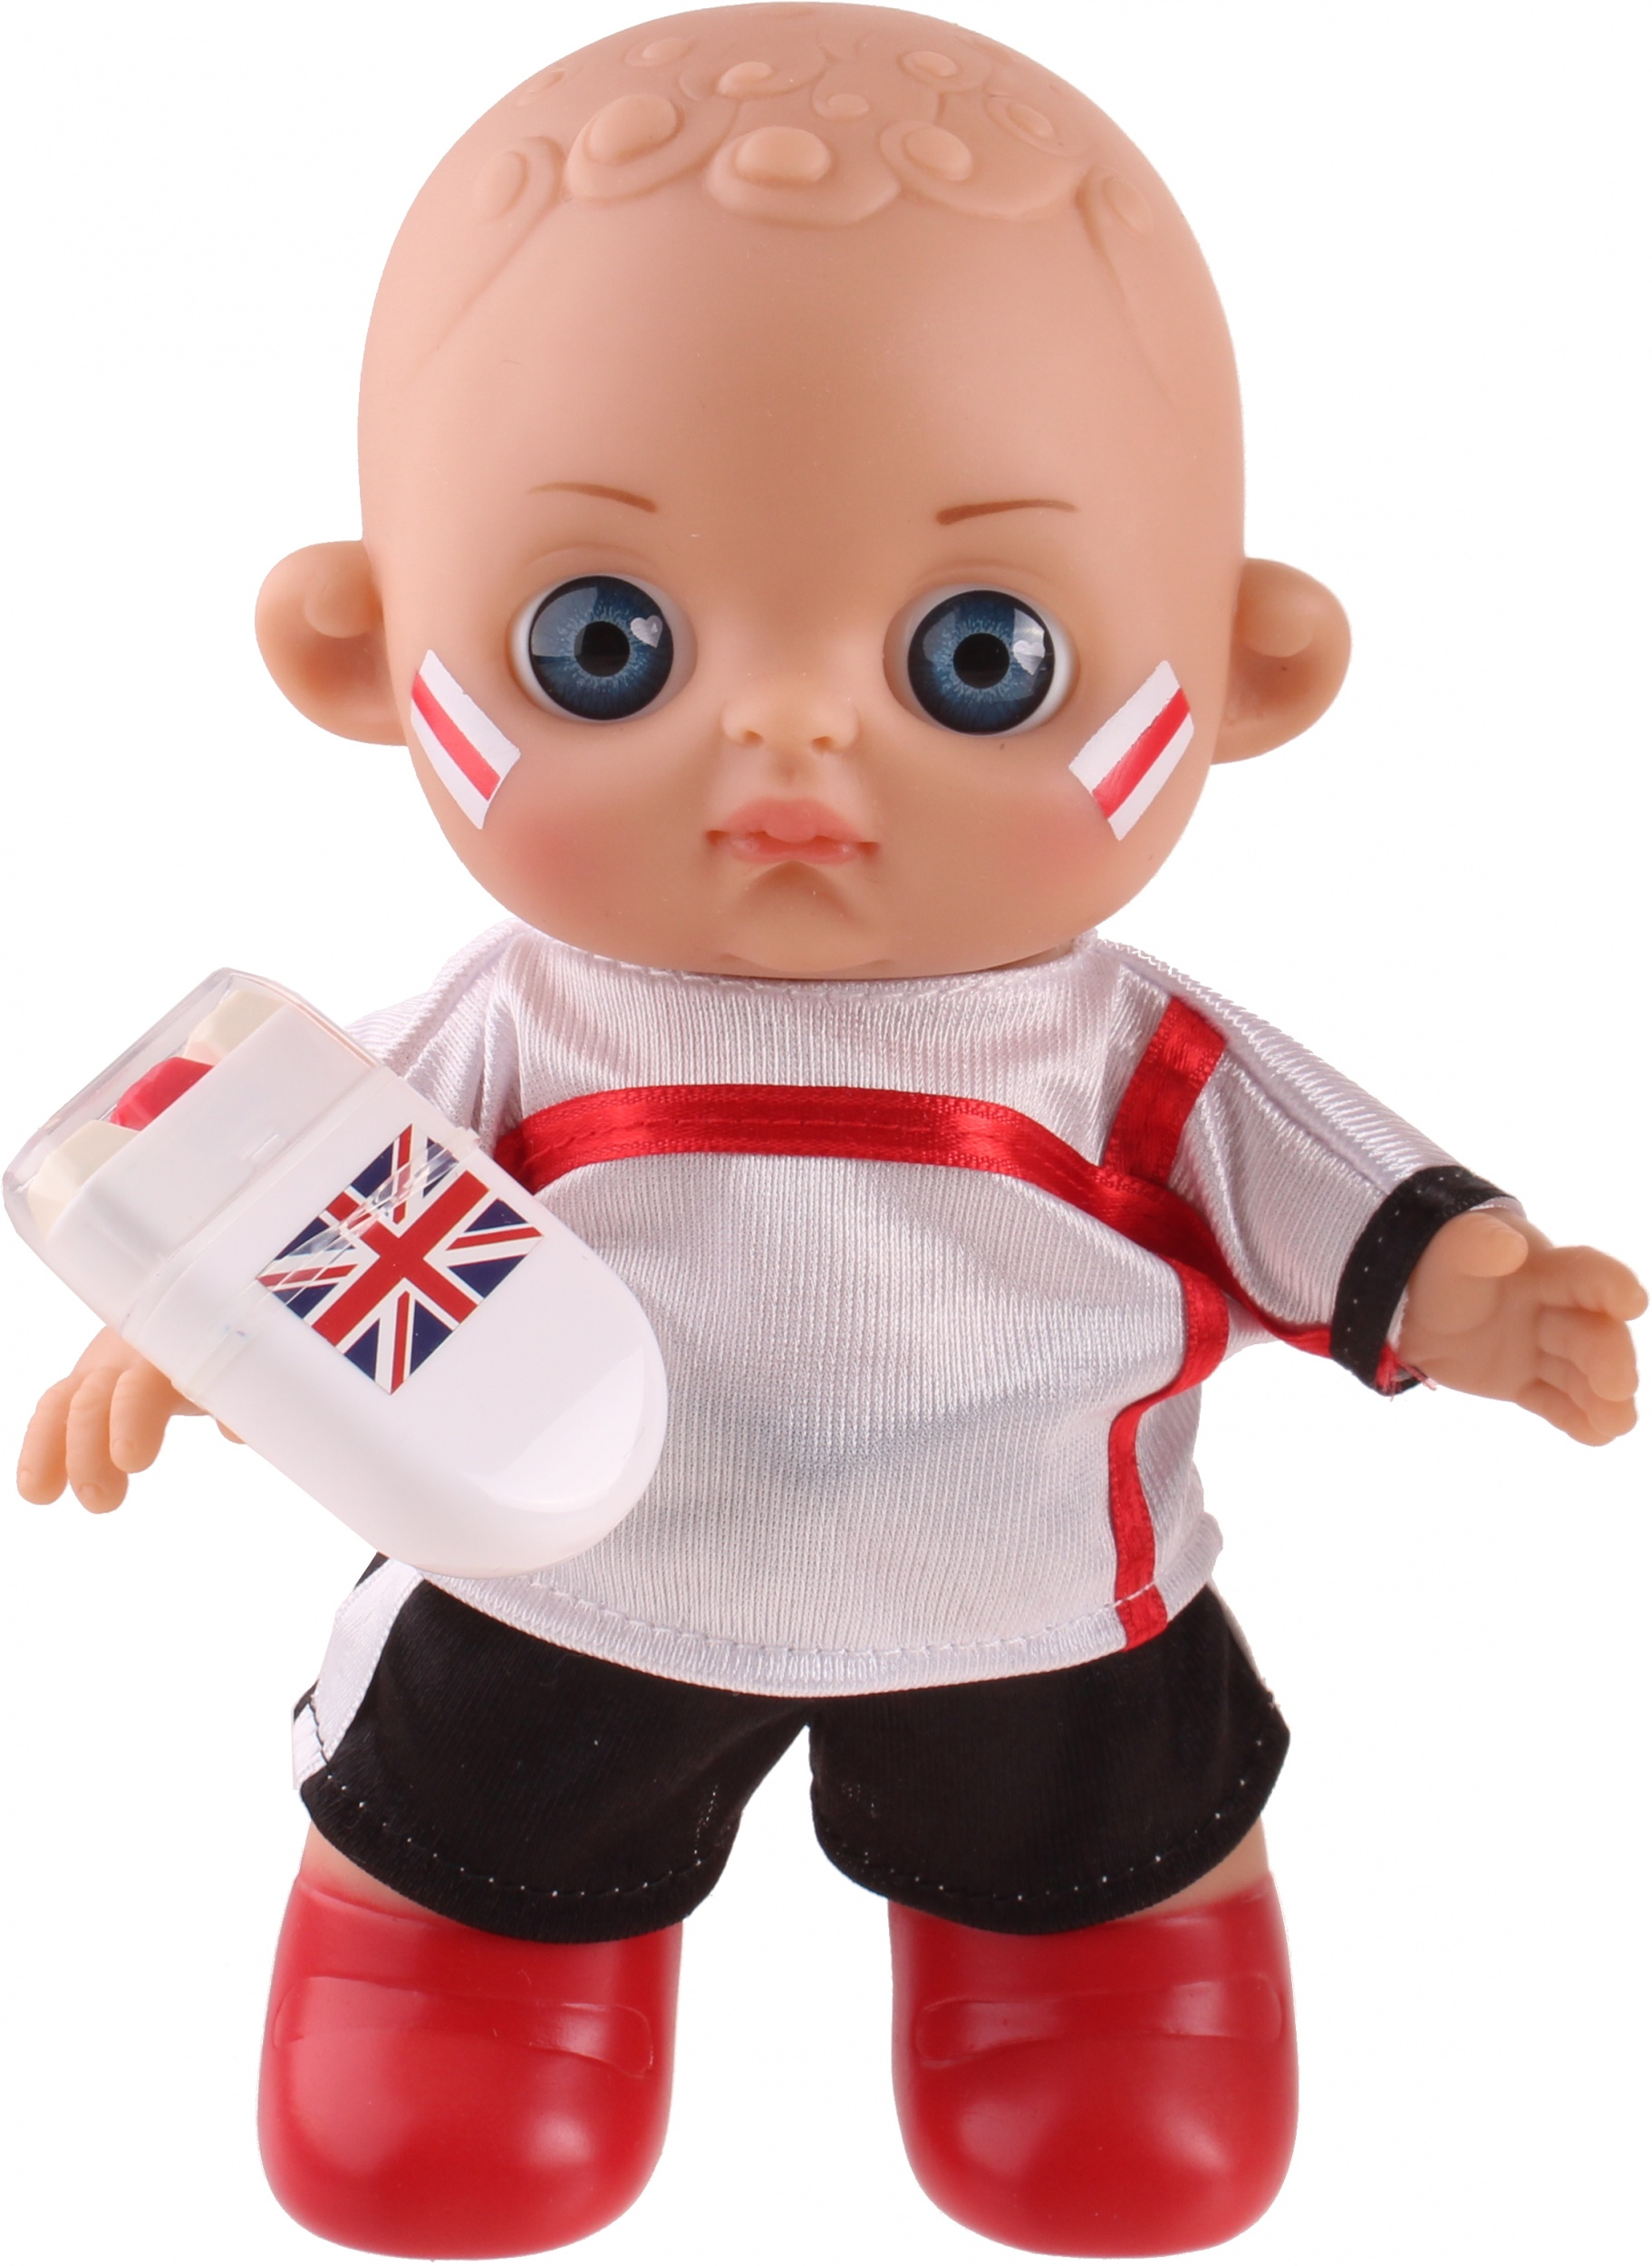 Falca Football Baby Doll With Makeup Engeland20 Cm Twm Tom Wholesale Management